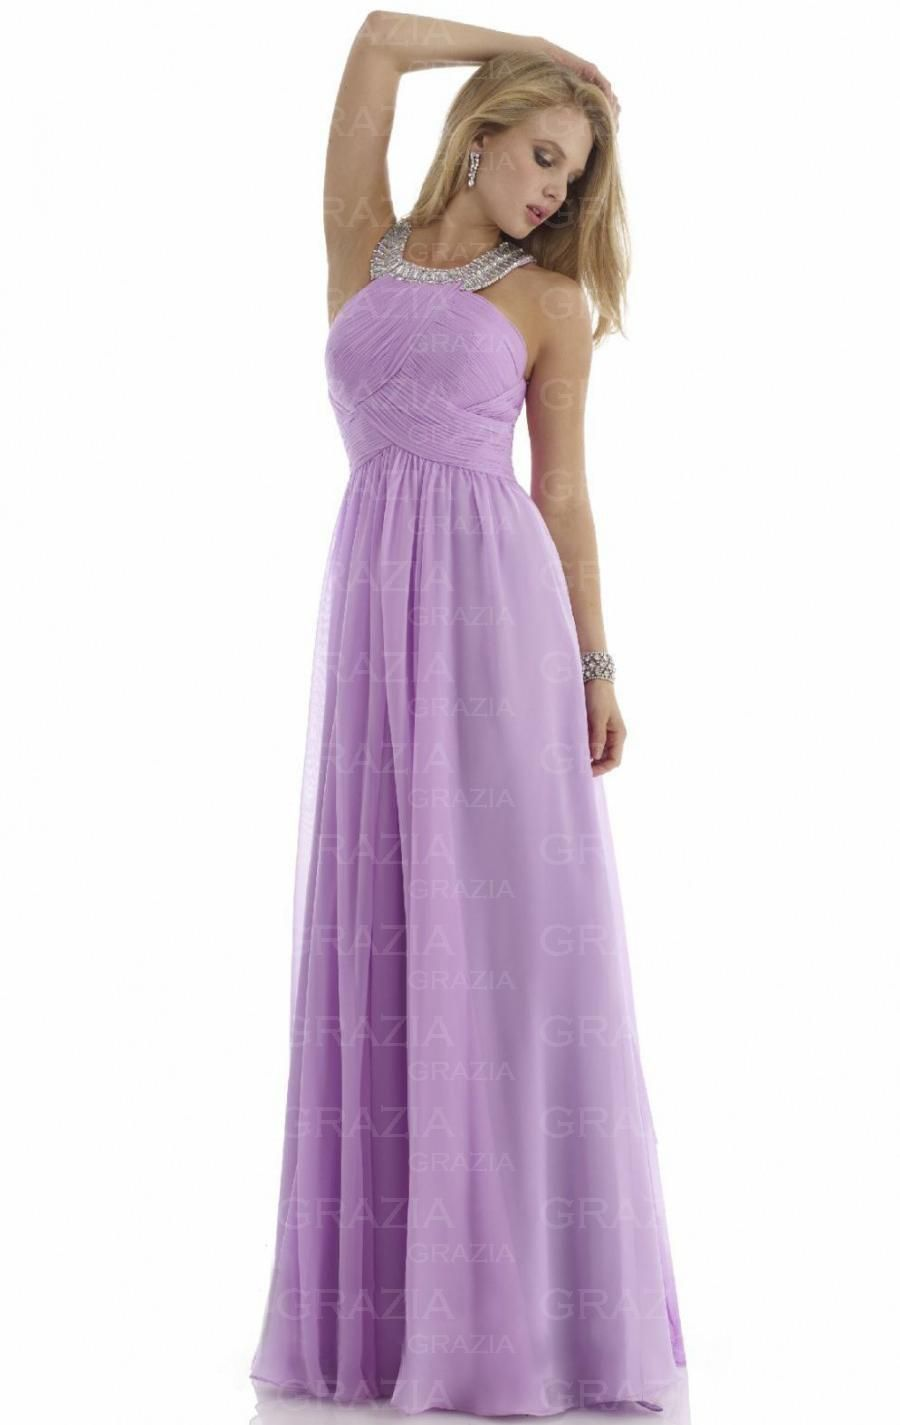 Adelaide Formal Dresses And Gowns   MarieAustralia.com   Adorable ...